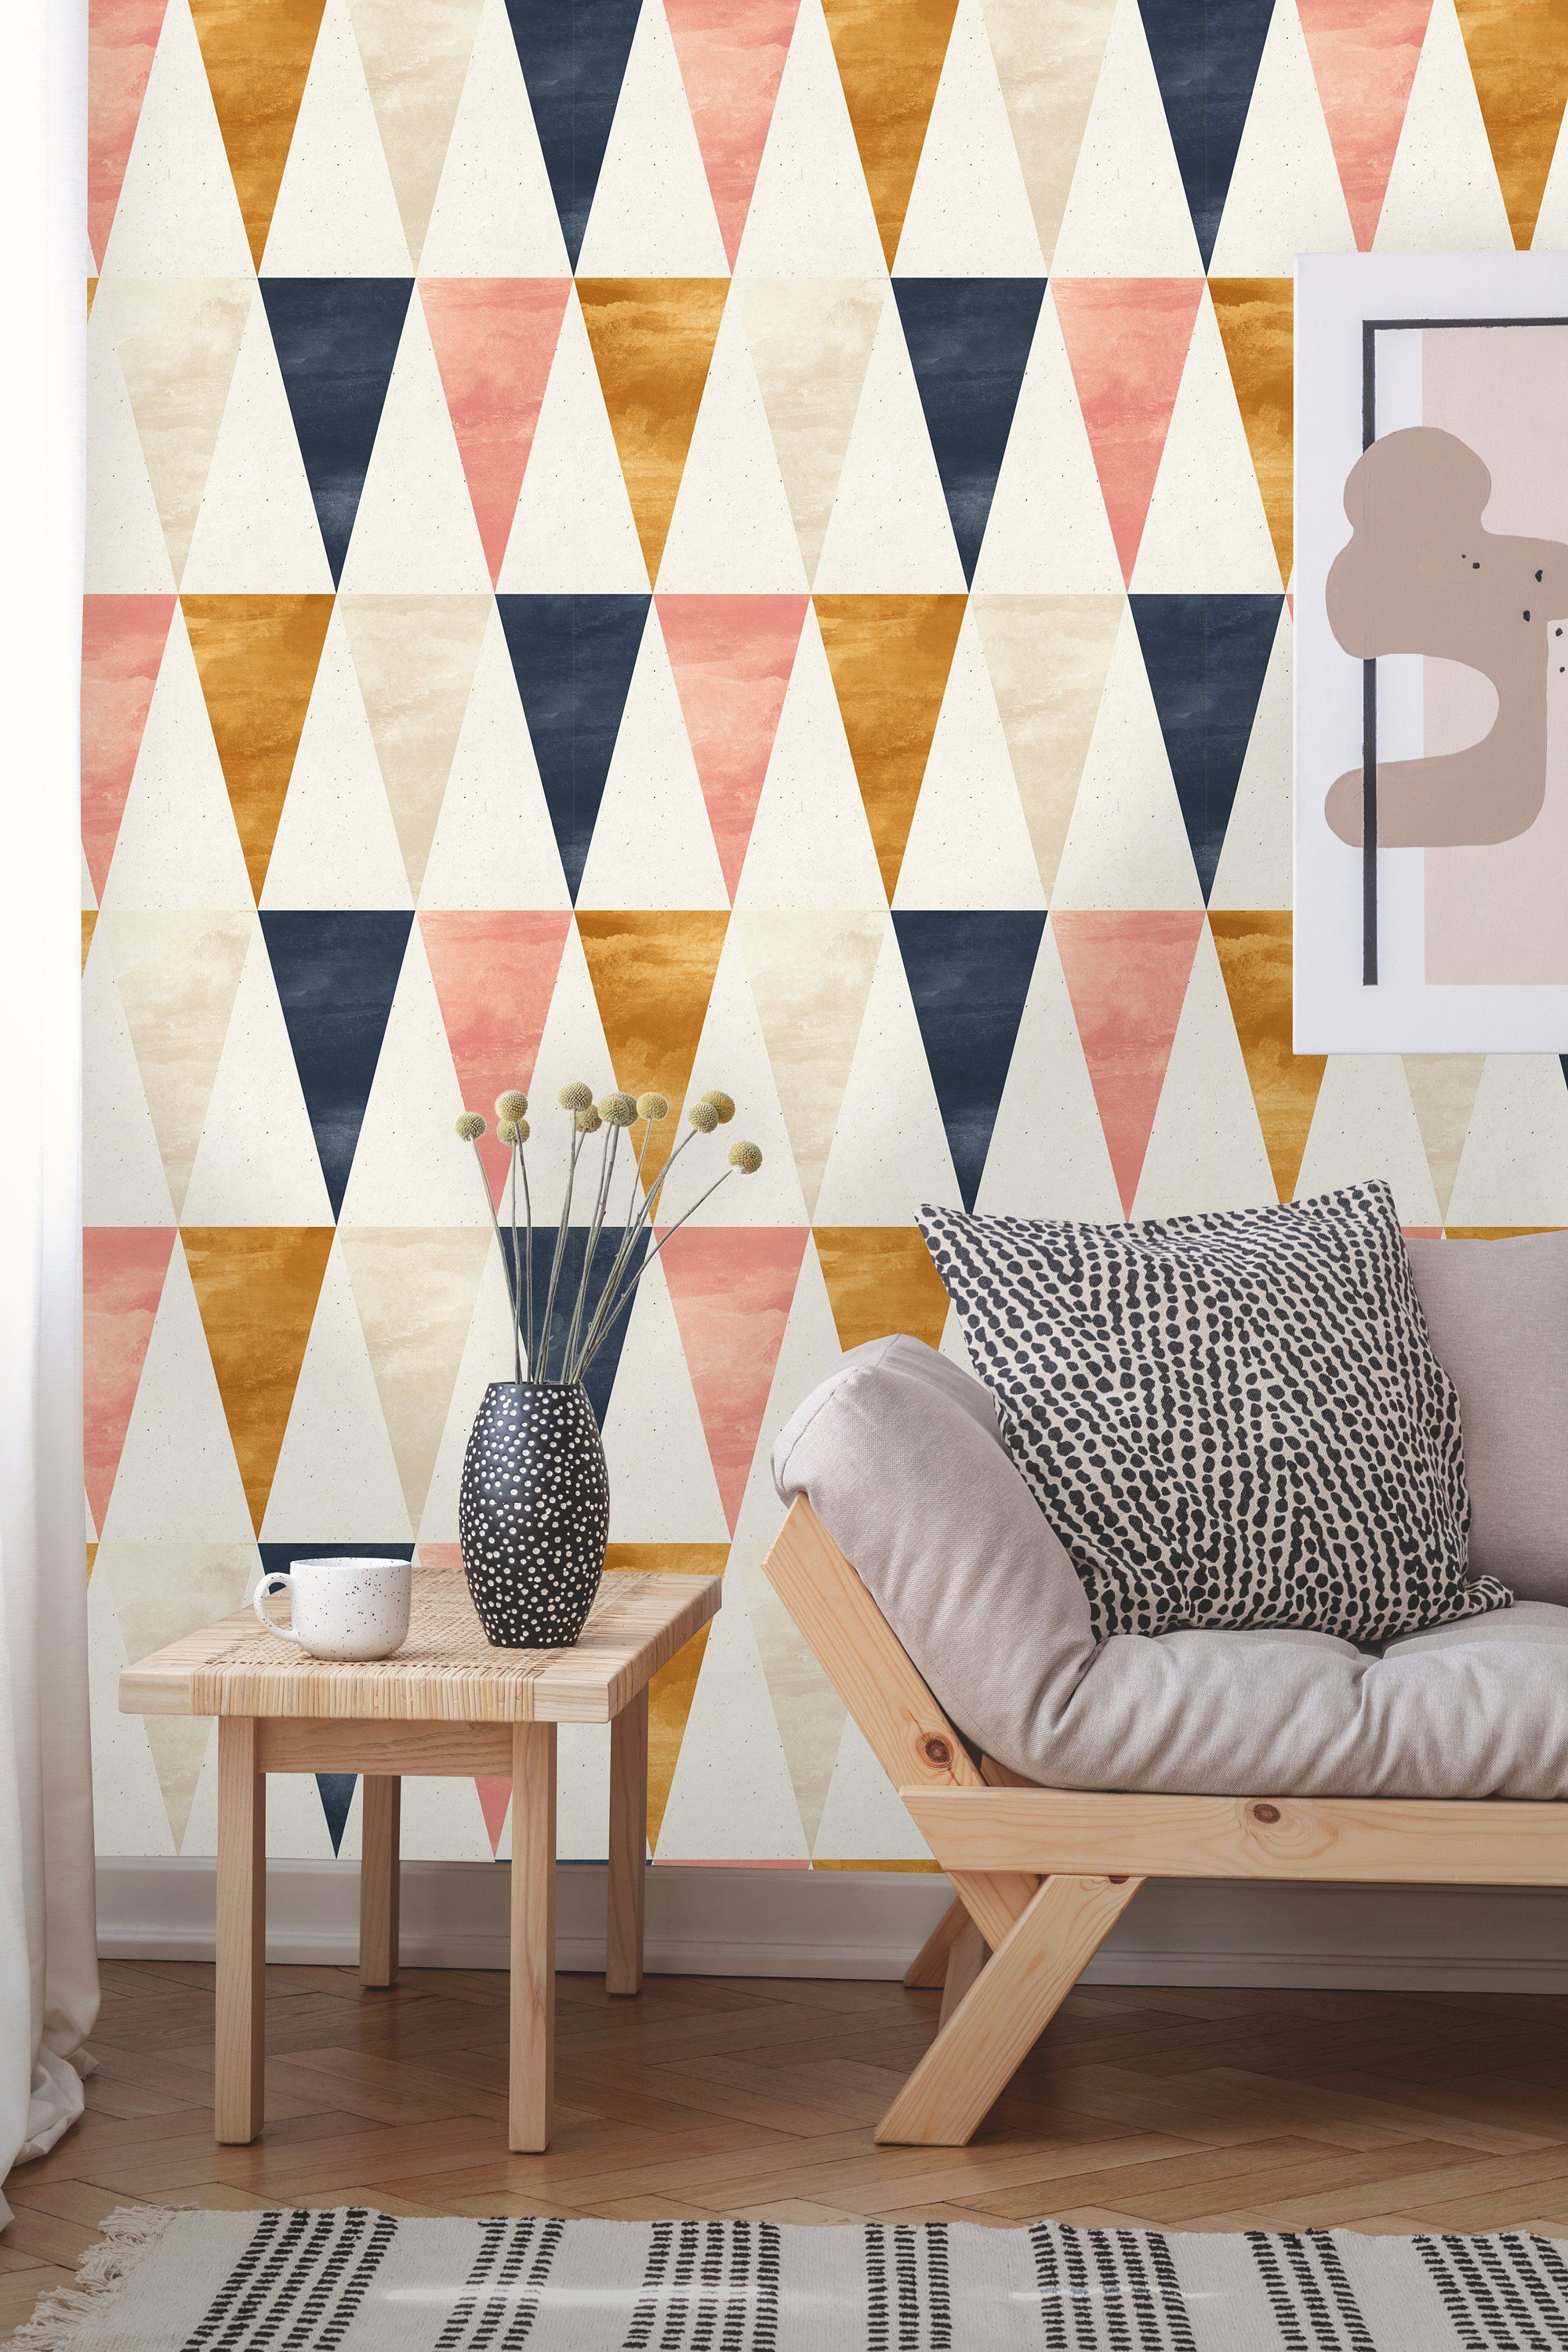 12 Peel Stick Wallpapers That Don T Look Like Wallpaper At All Emily A Clark Kitchen Wallpaper Peel And Stick Wallpaper Wallpaper